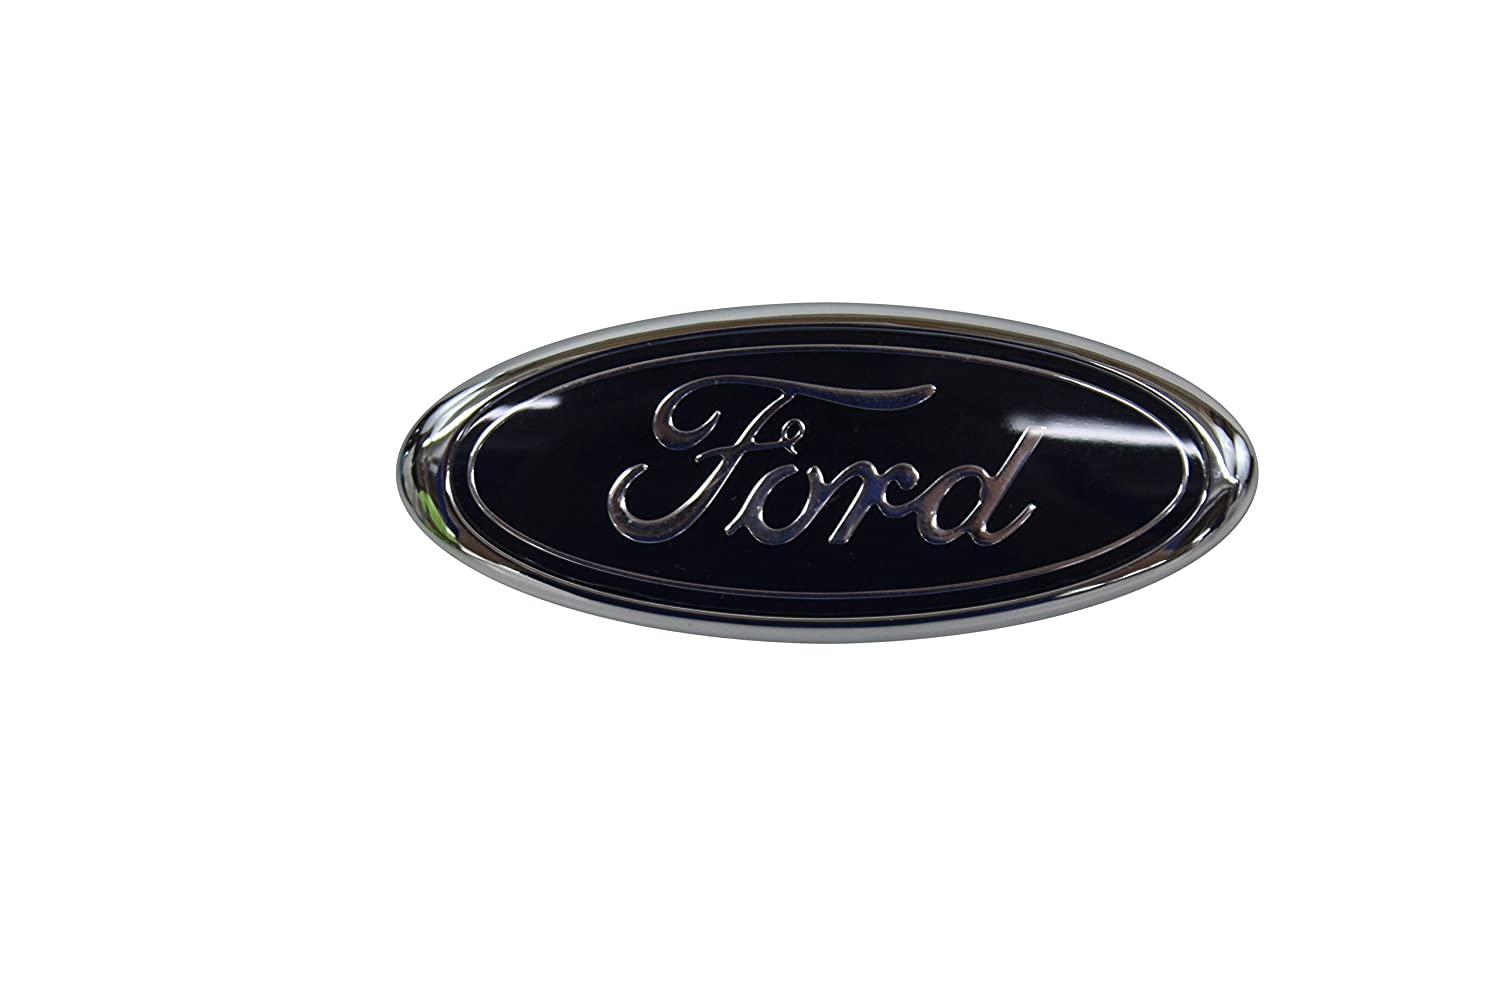 Genuine Ford F8CZ-8A223-AA Emblem